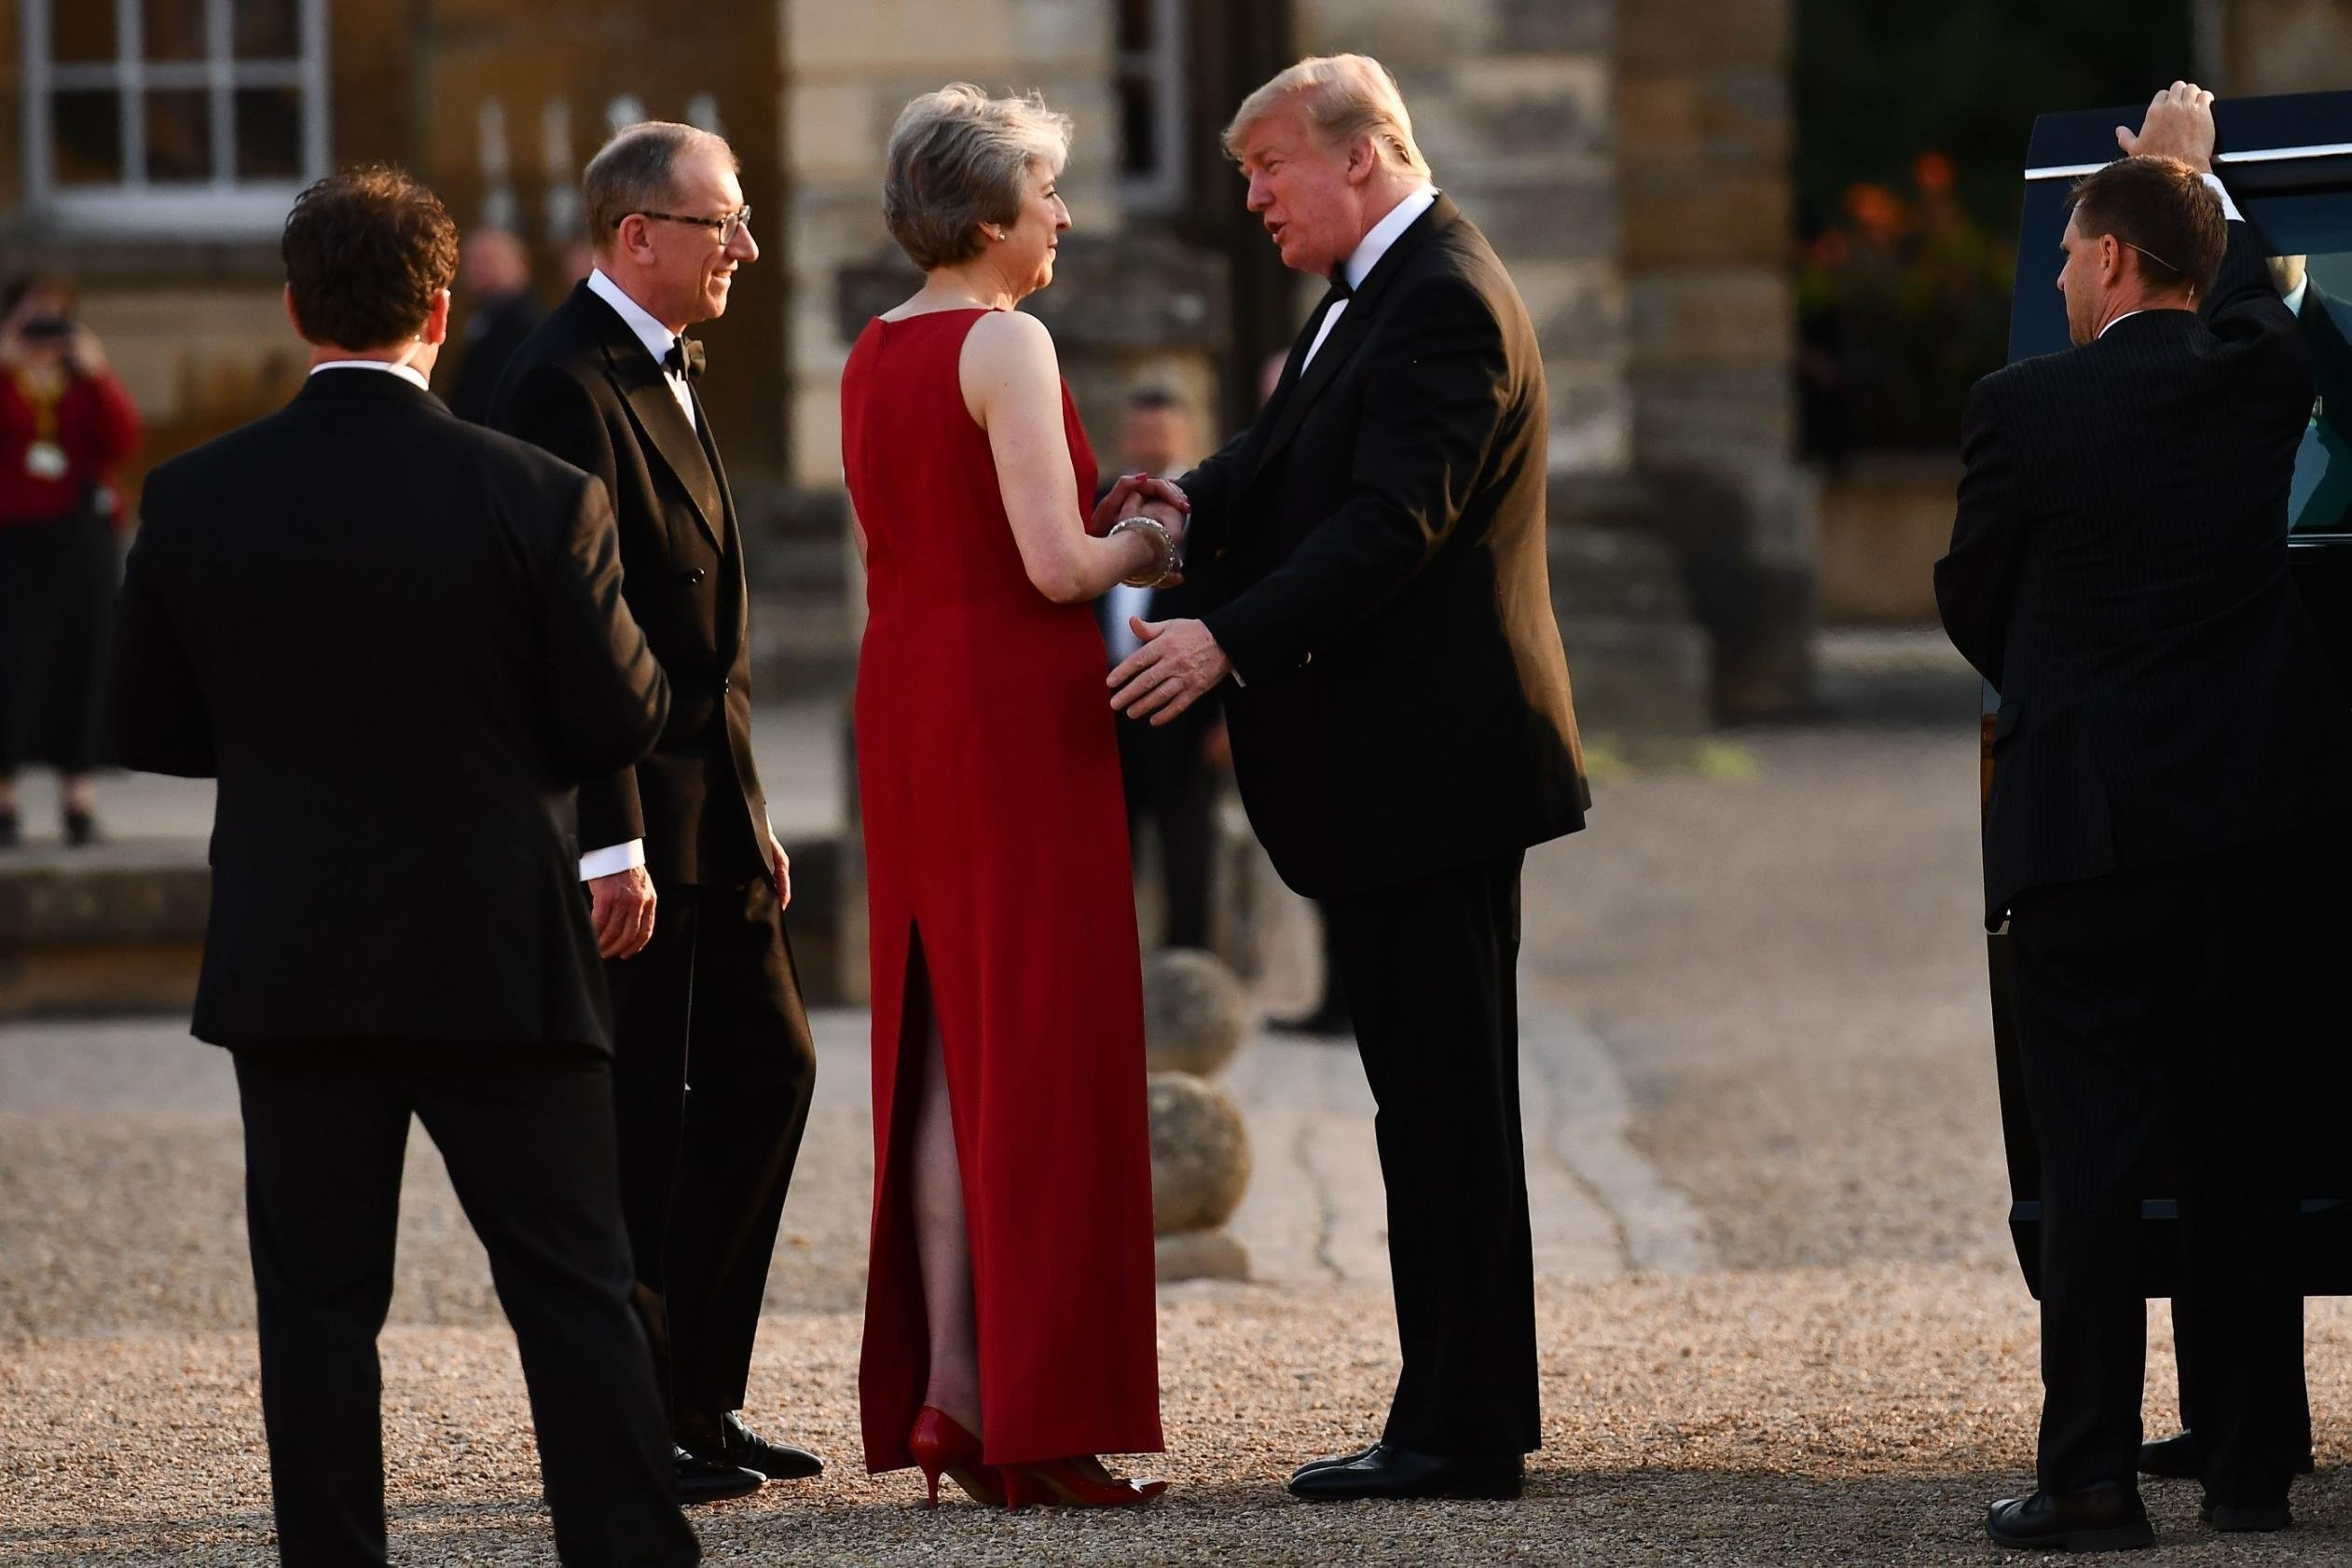 Britain's Prime Minister Theresa May (C) shakes hands with US President Donald Trump (R) as Philip May (L) looks on as she welcomes Trump and his wife US First Lady Melania Trump (unseen) for a black-tie dinner with business leaders at Blenheim Palace,...